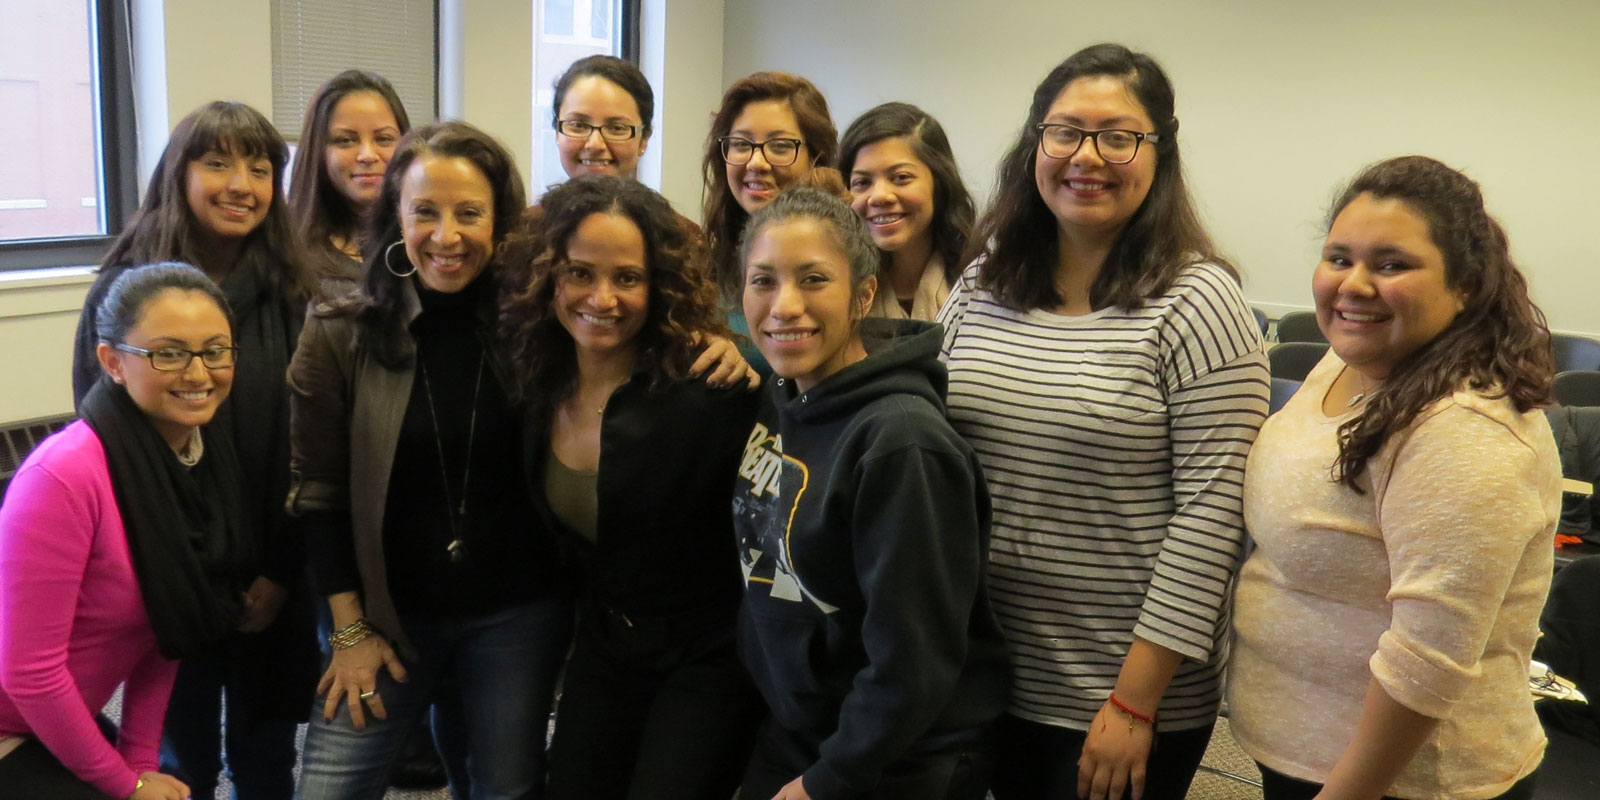 ​Actress Judy Reyes's talk on Latina leadership in Hollywood